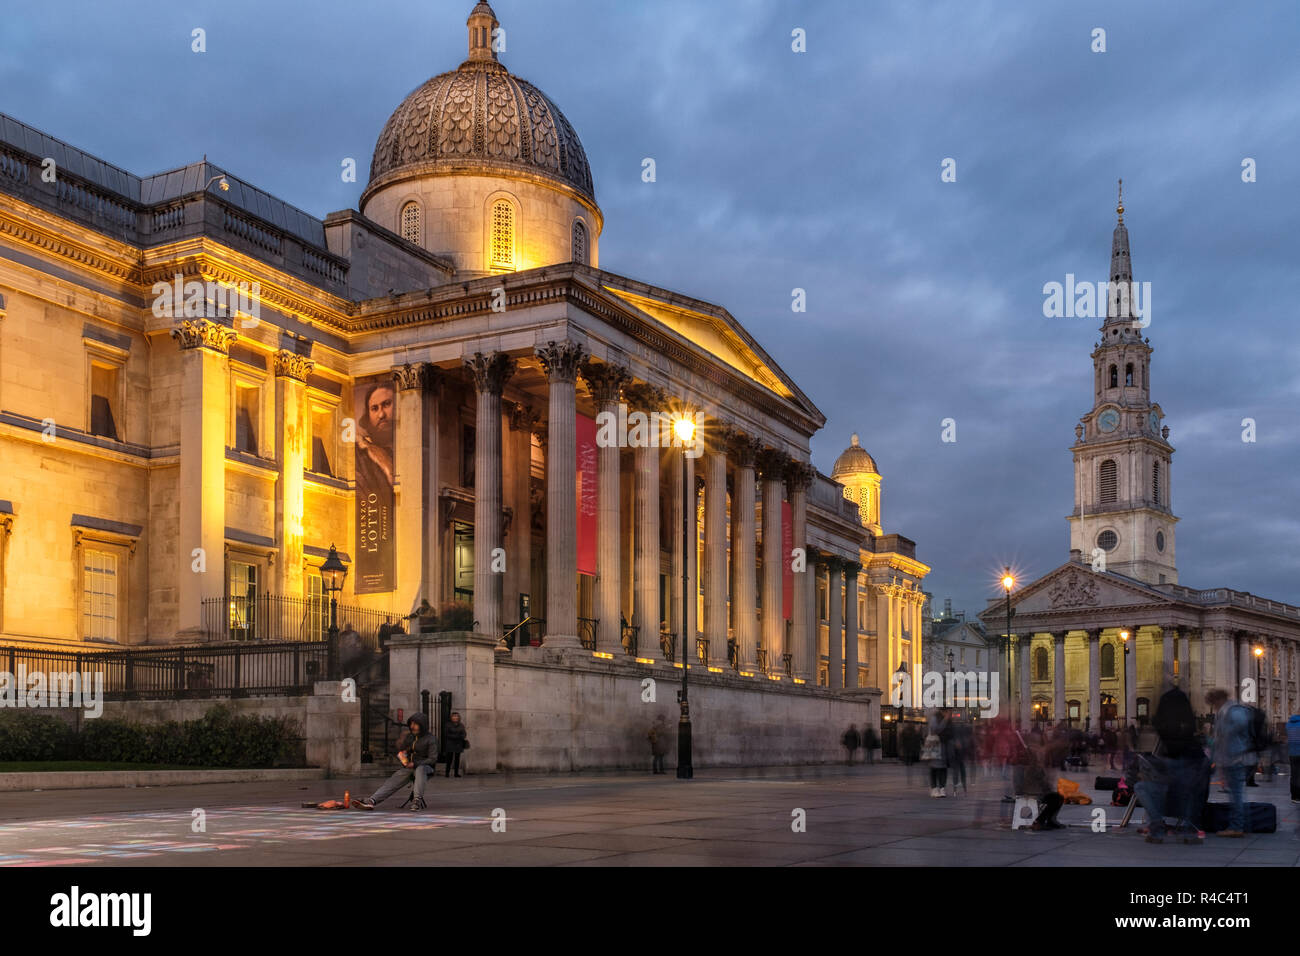 England ,London,Trafalgar Square, The National Gallery and ST Martin-in the-Field church  at night - Stock Image